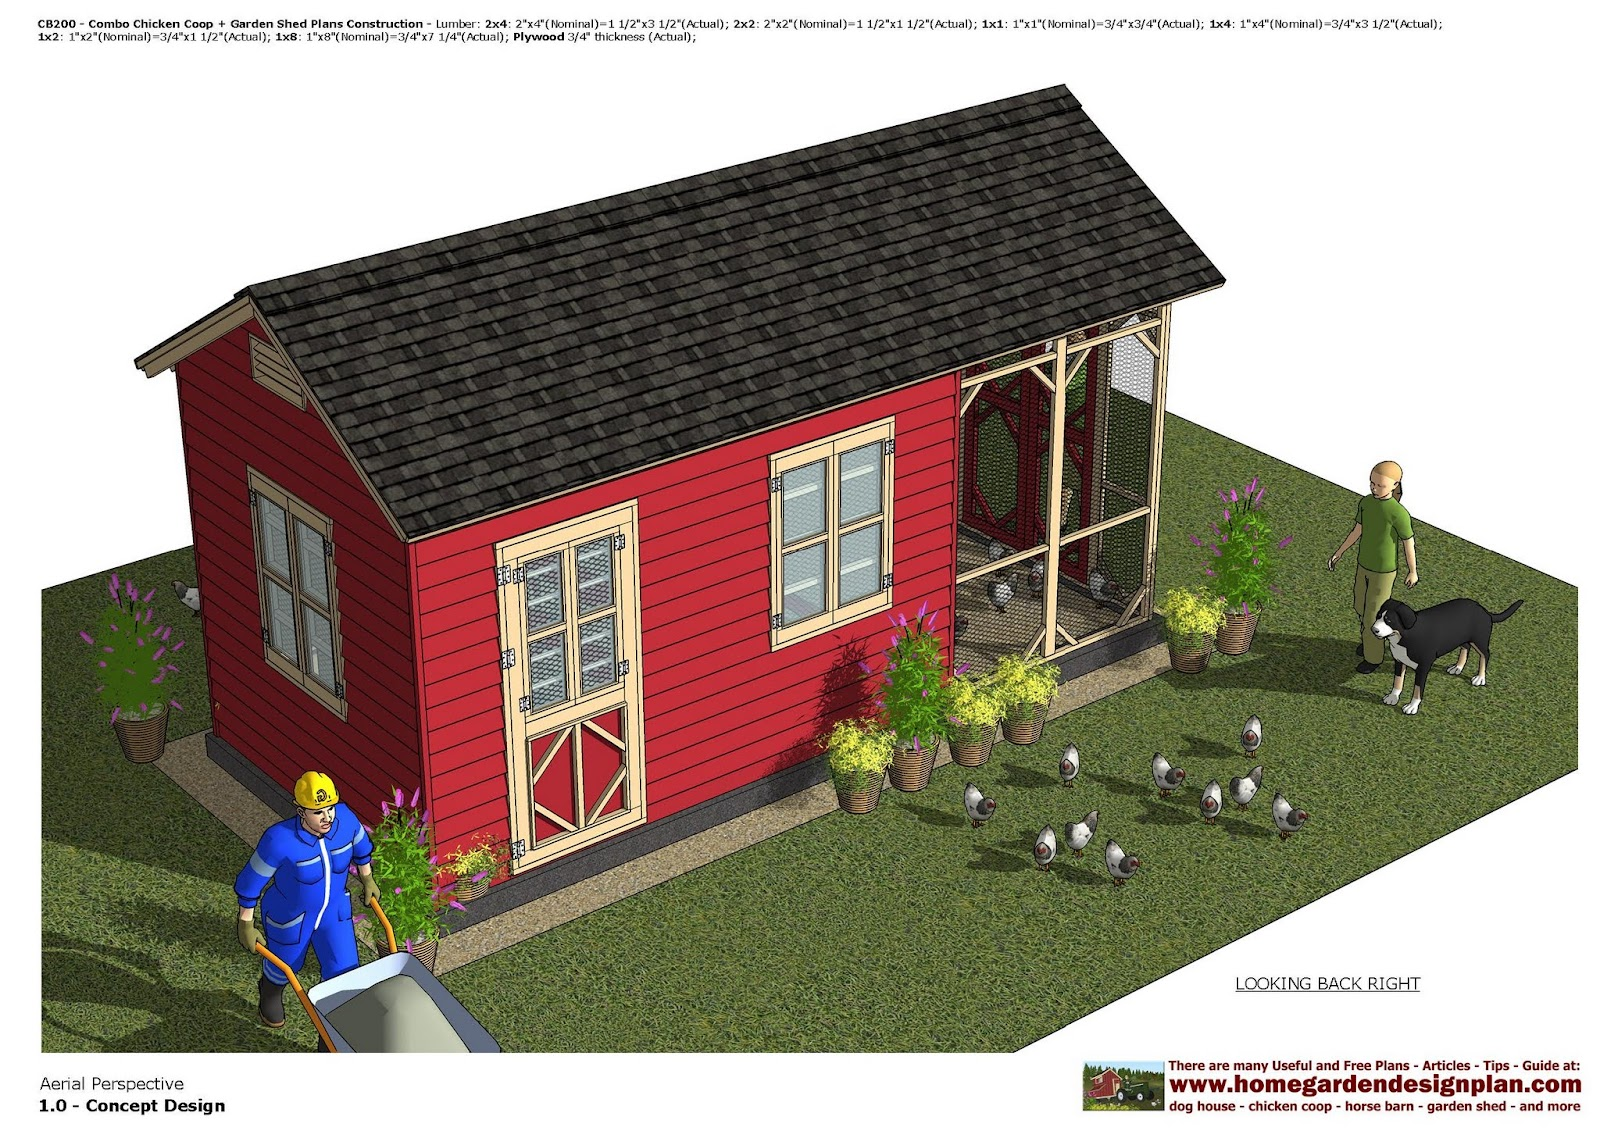 Garden Sheds 2 X 3 home garden plans: cb200 _ combo chicken coop + garden shed plans